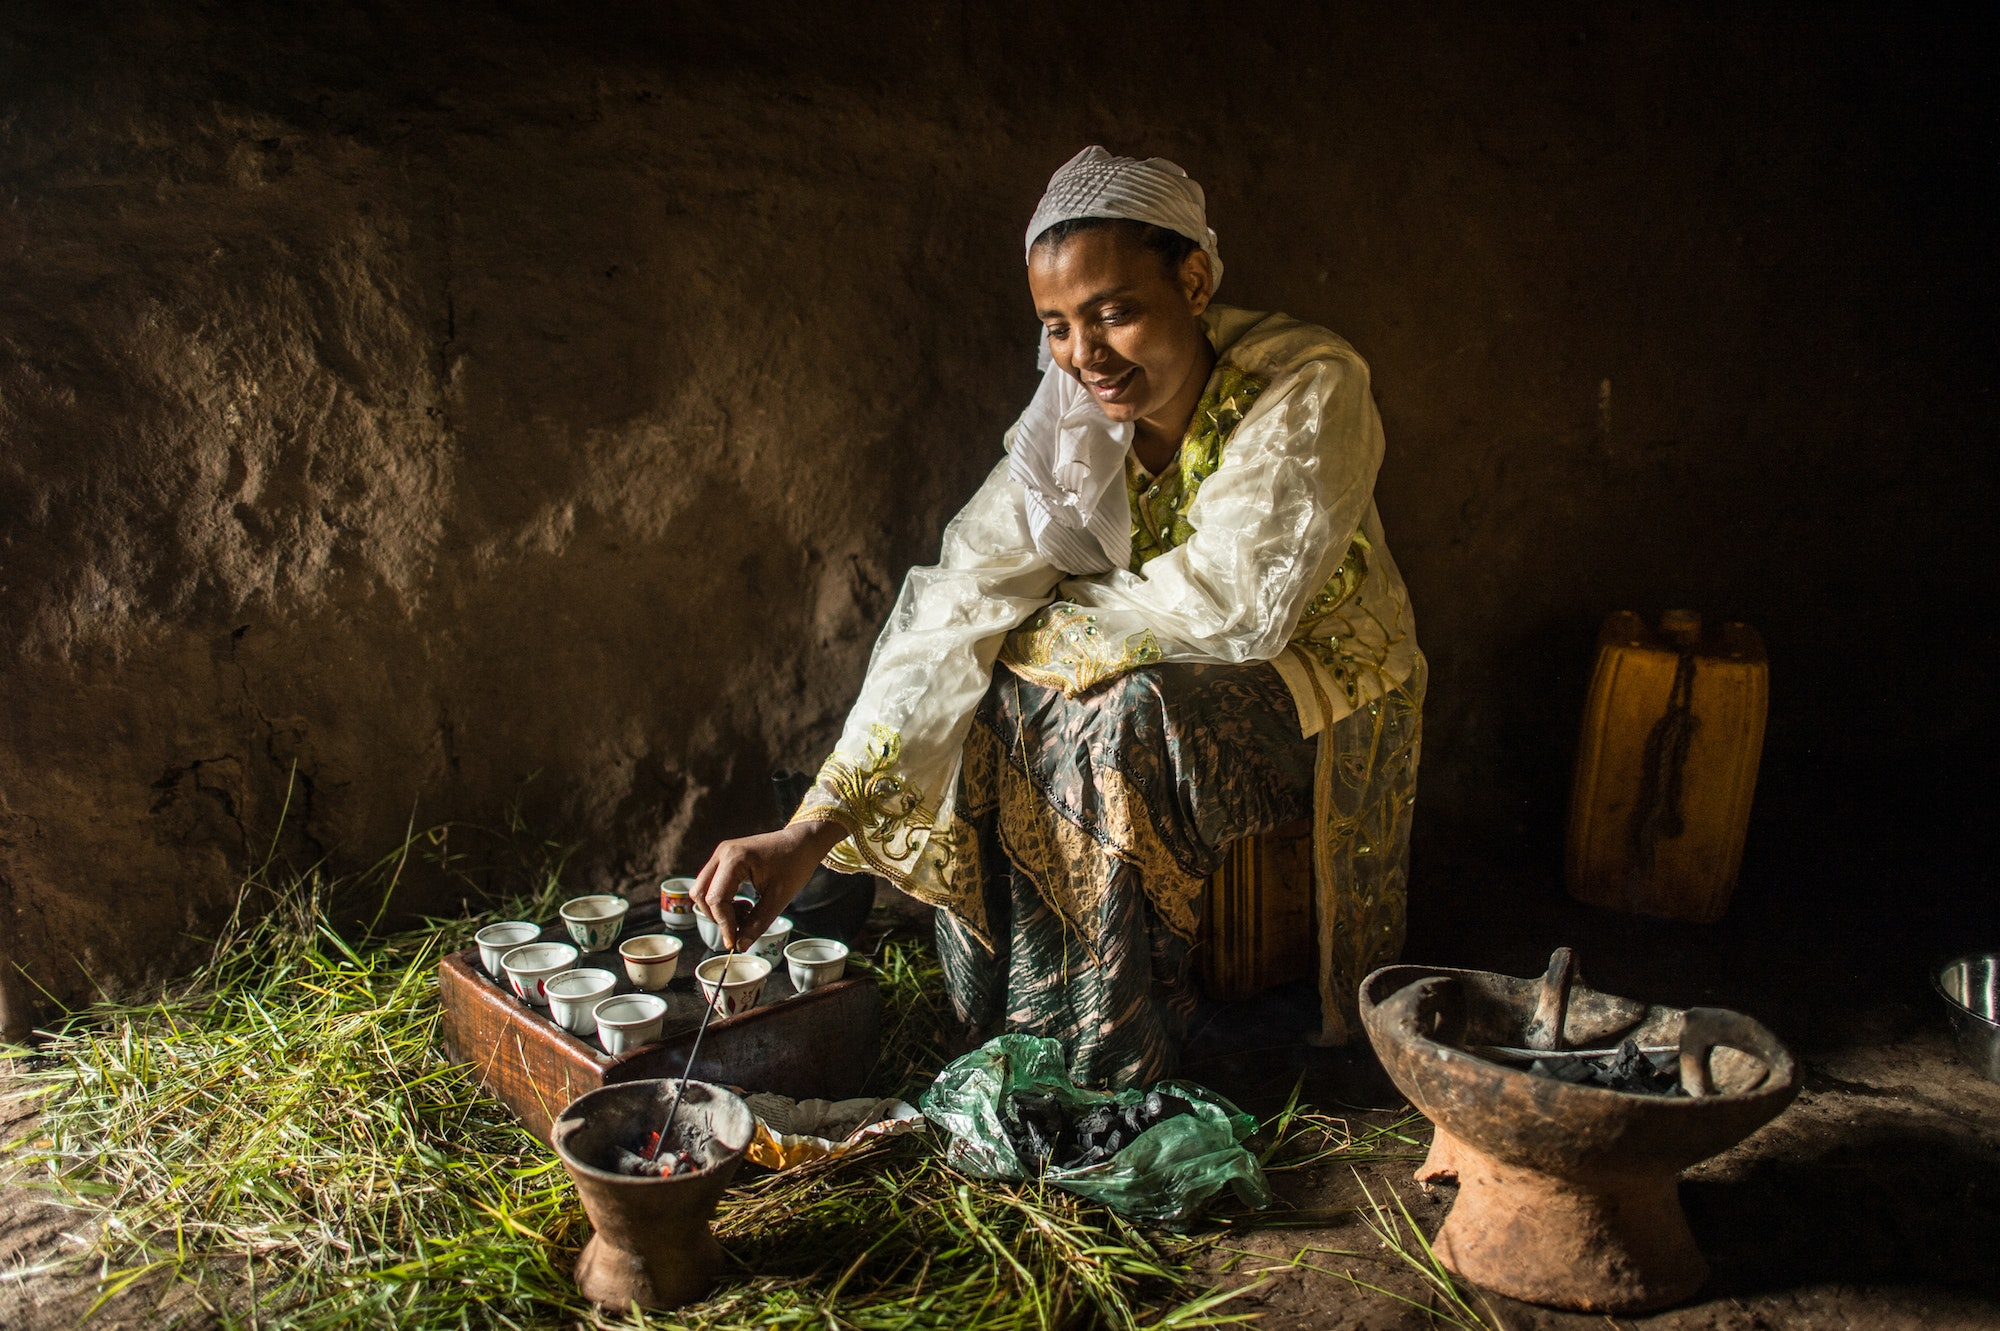 In Ethiopia, coffee is prepared and served in an elaborate three-part ritual.